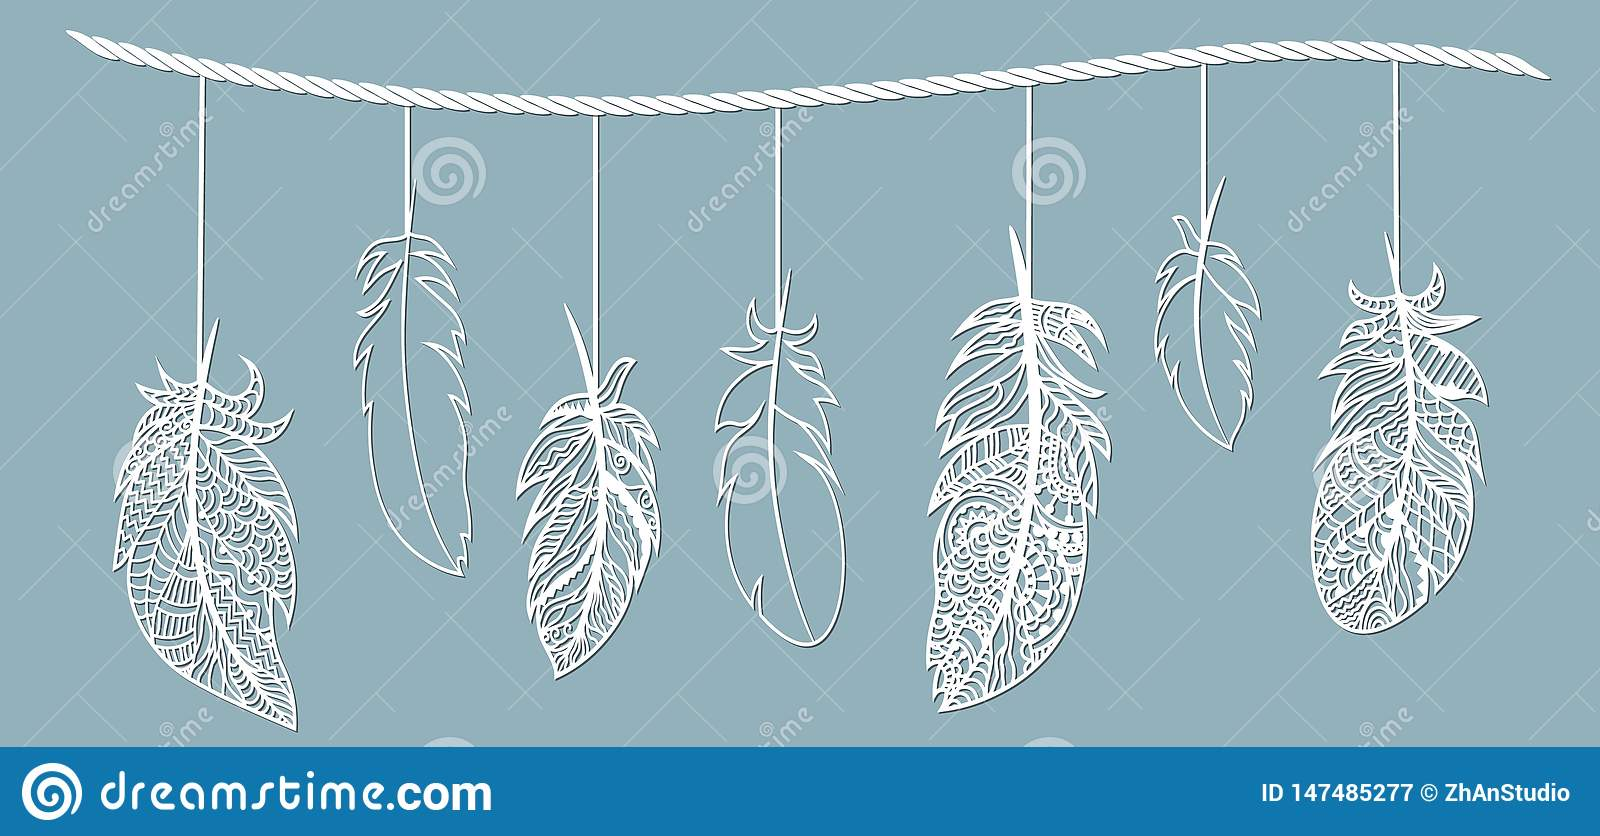 Feather. Laser cut. Feathers on a string. Template for laser cutting and Plotter. Vector illustration. Sticker. Pattern for the